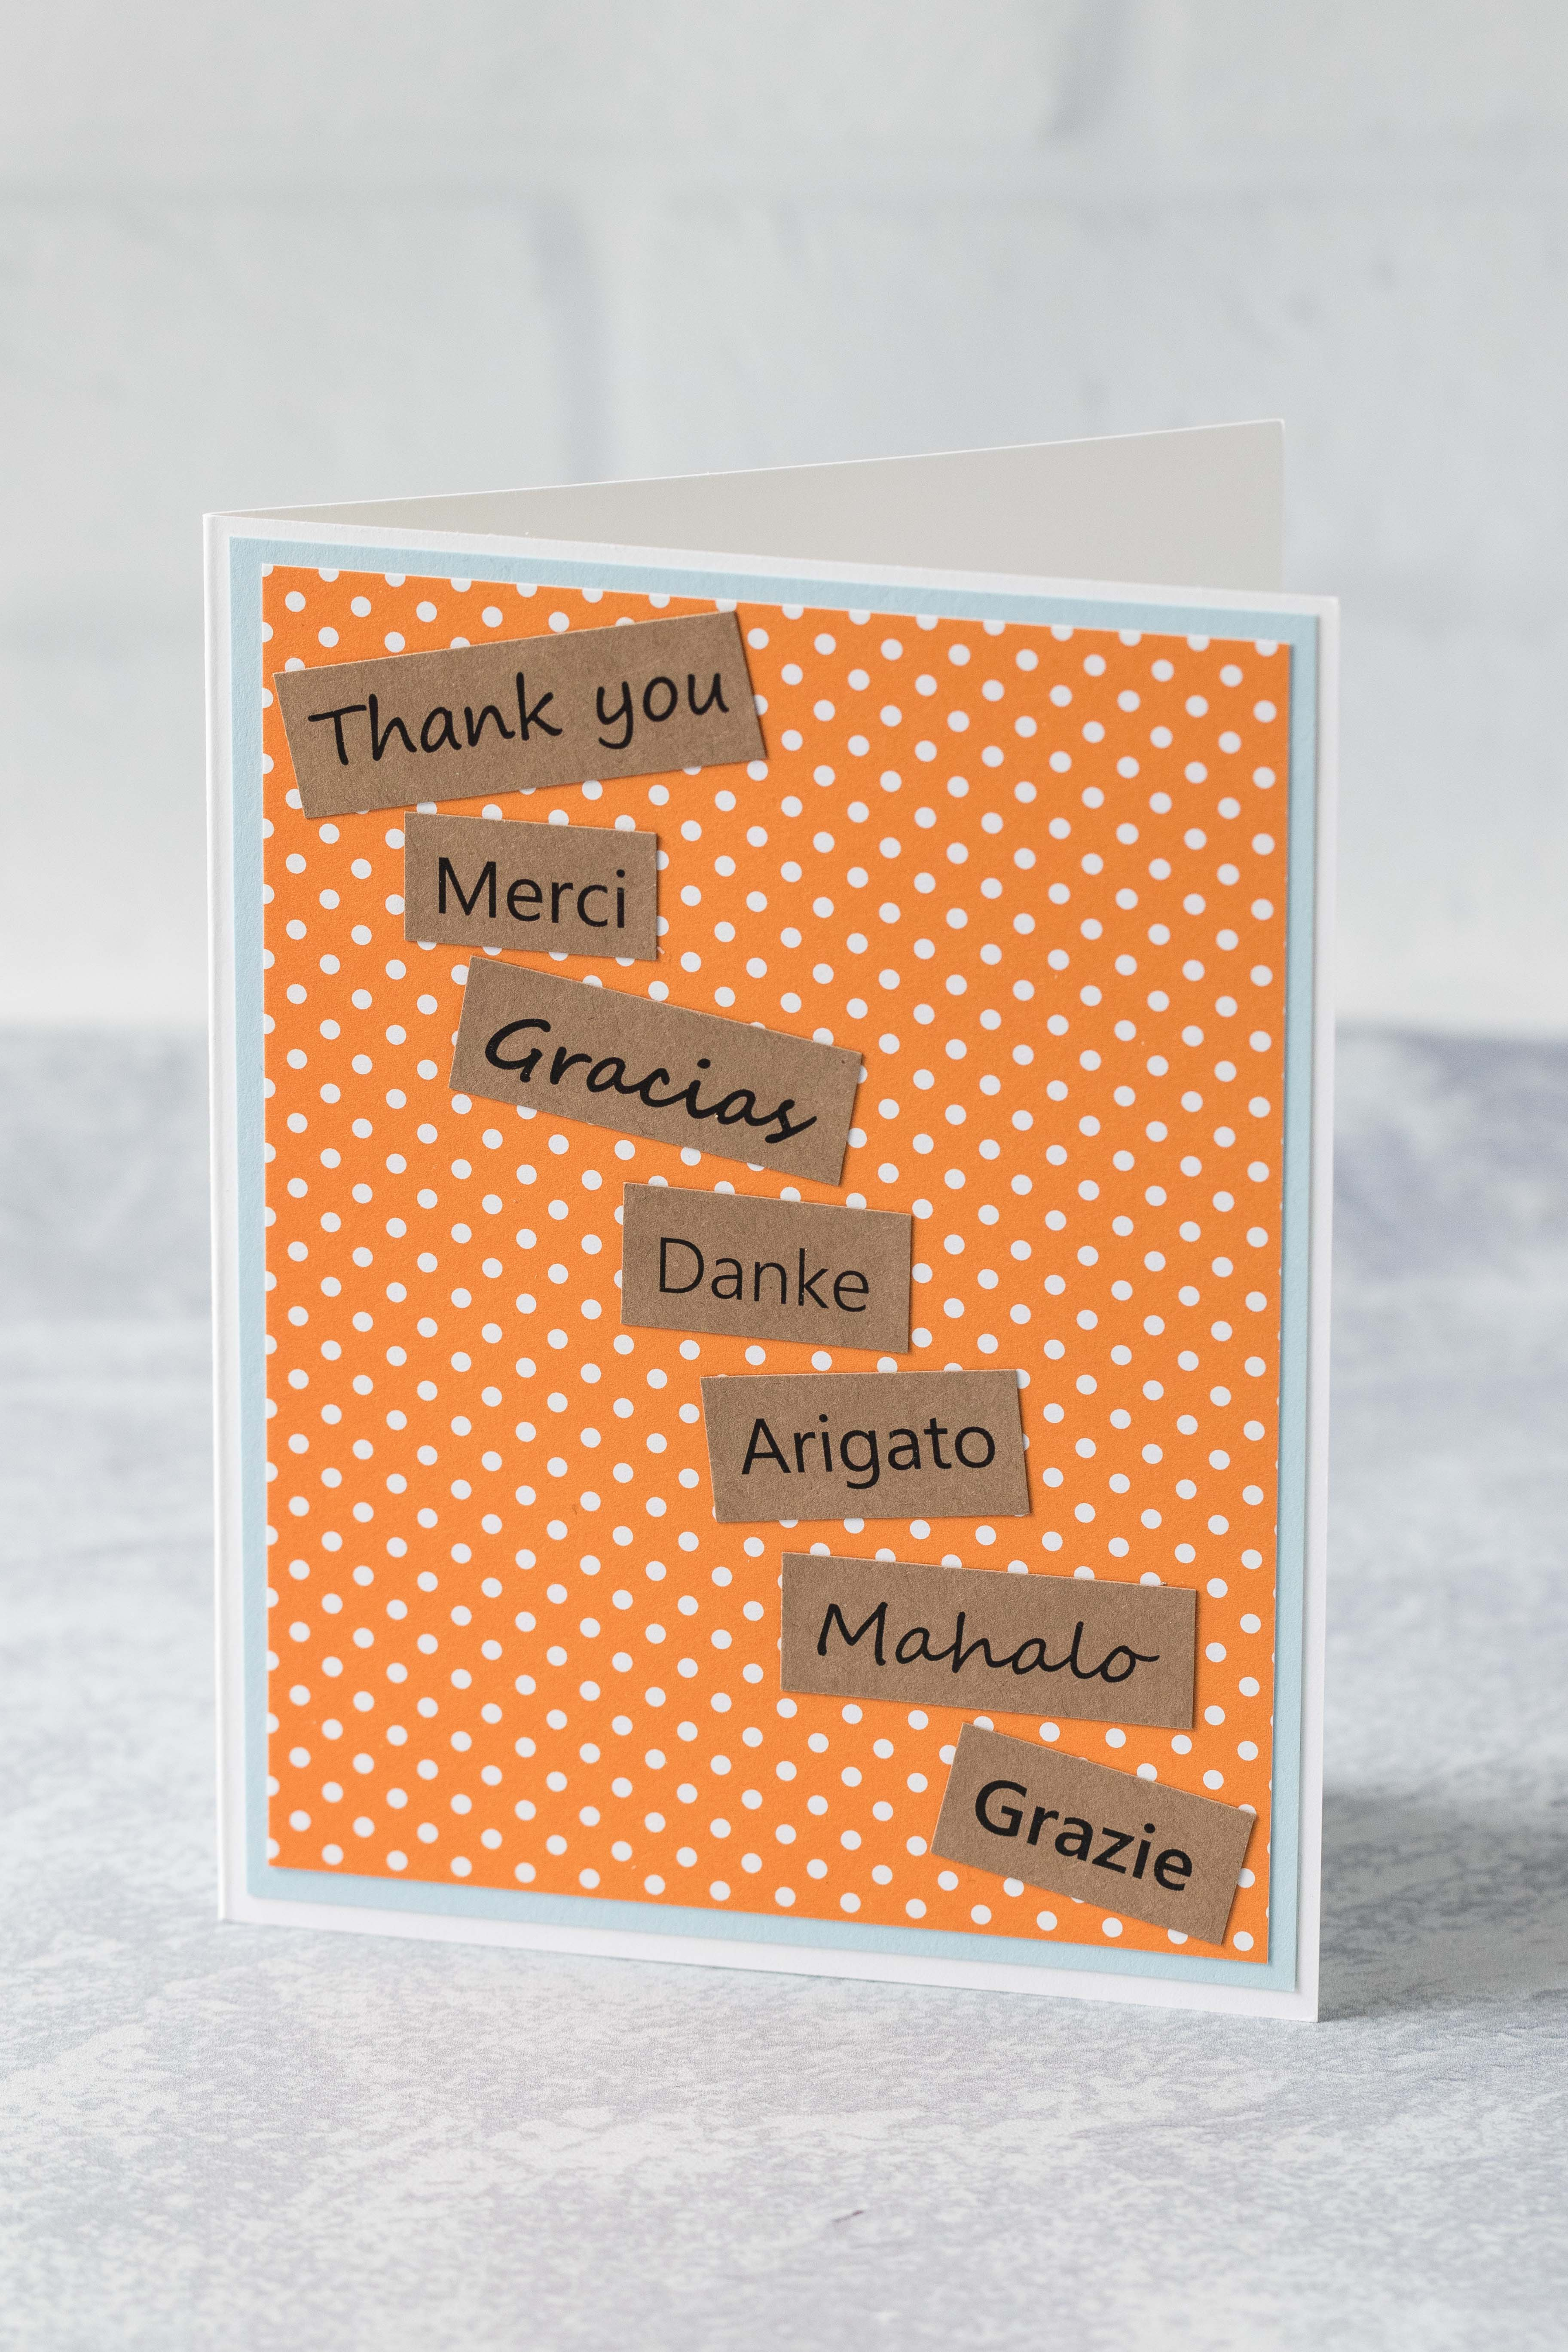 Thank you in multiple languages greeting card. #thankyoucard #greetingcard #greetingcardinspiration | https://www.roseclearfield.com